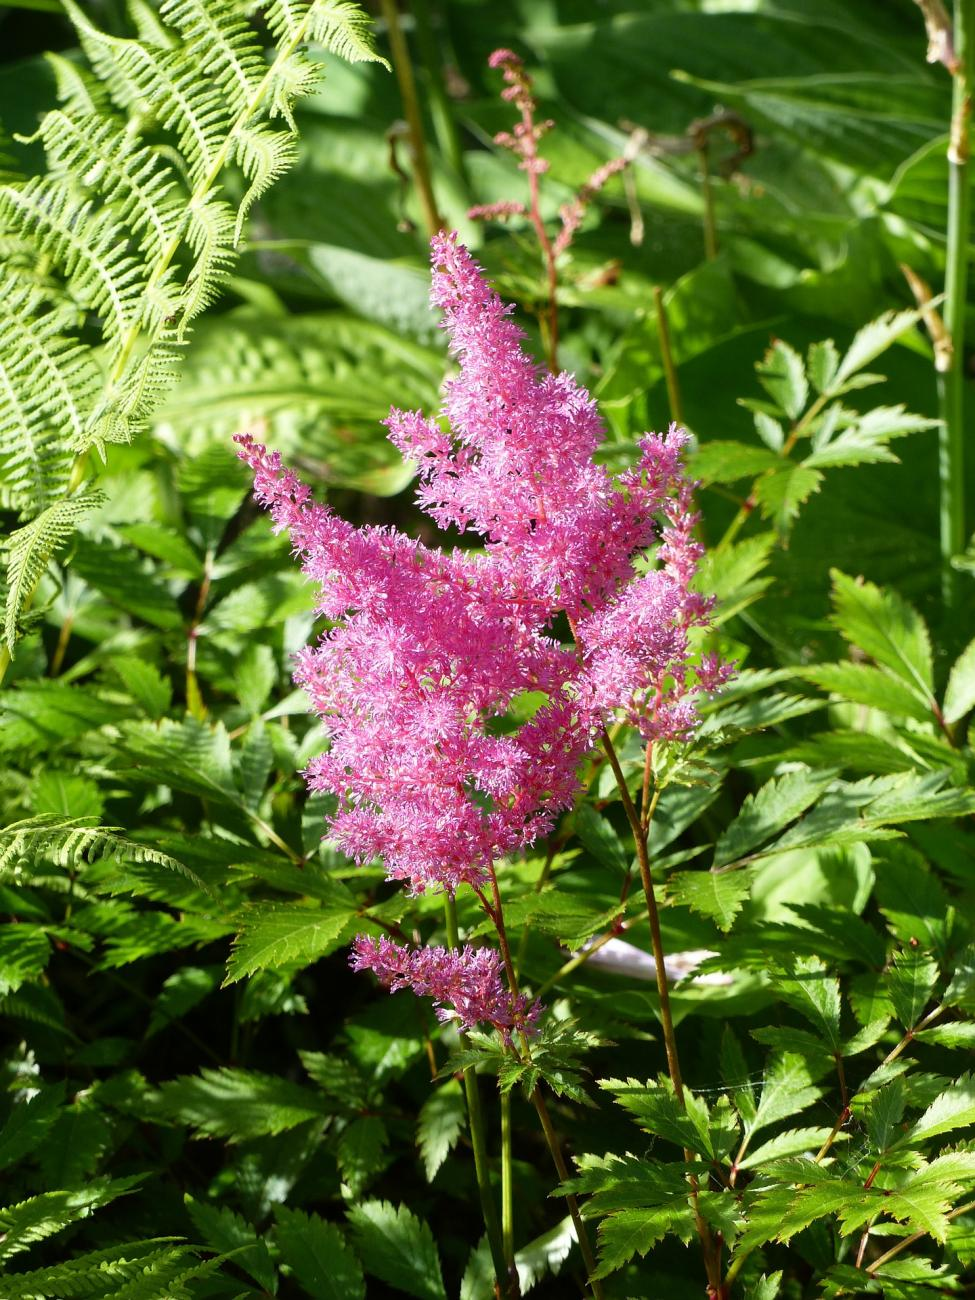 Astilbe How To Plant Grow And Care For Astilbe Flowers